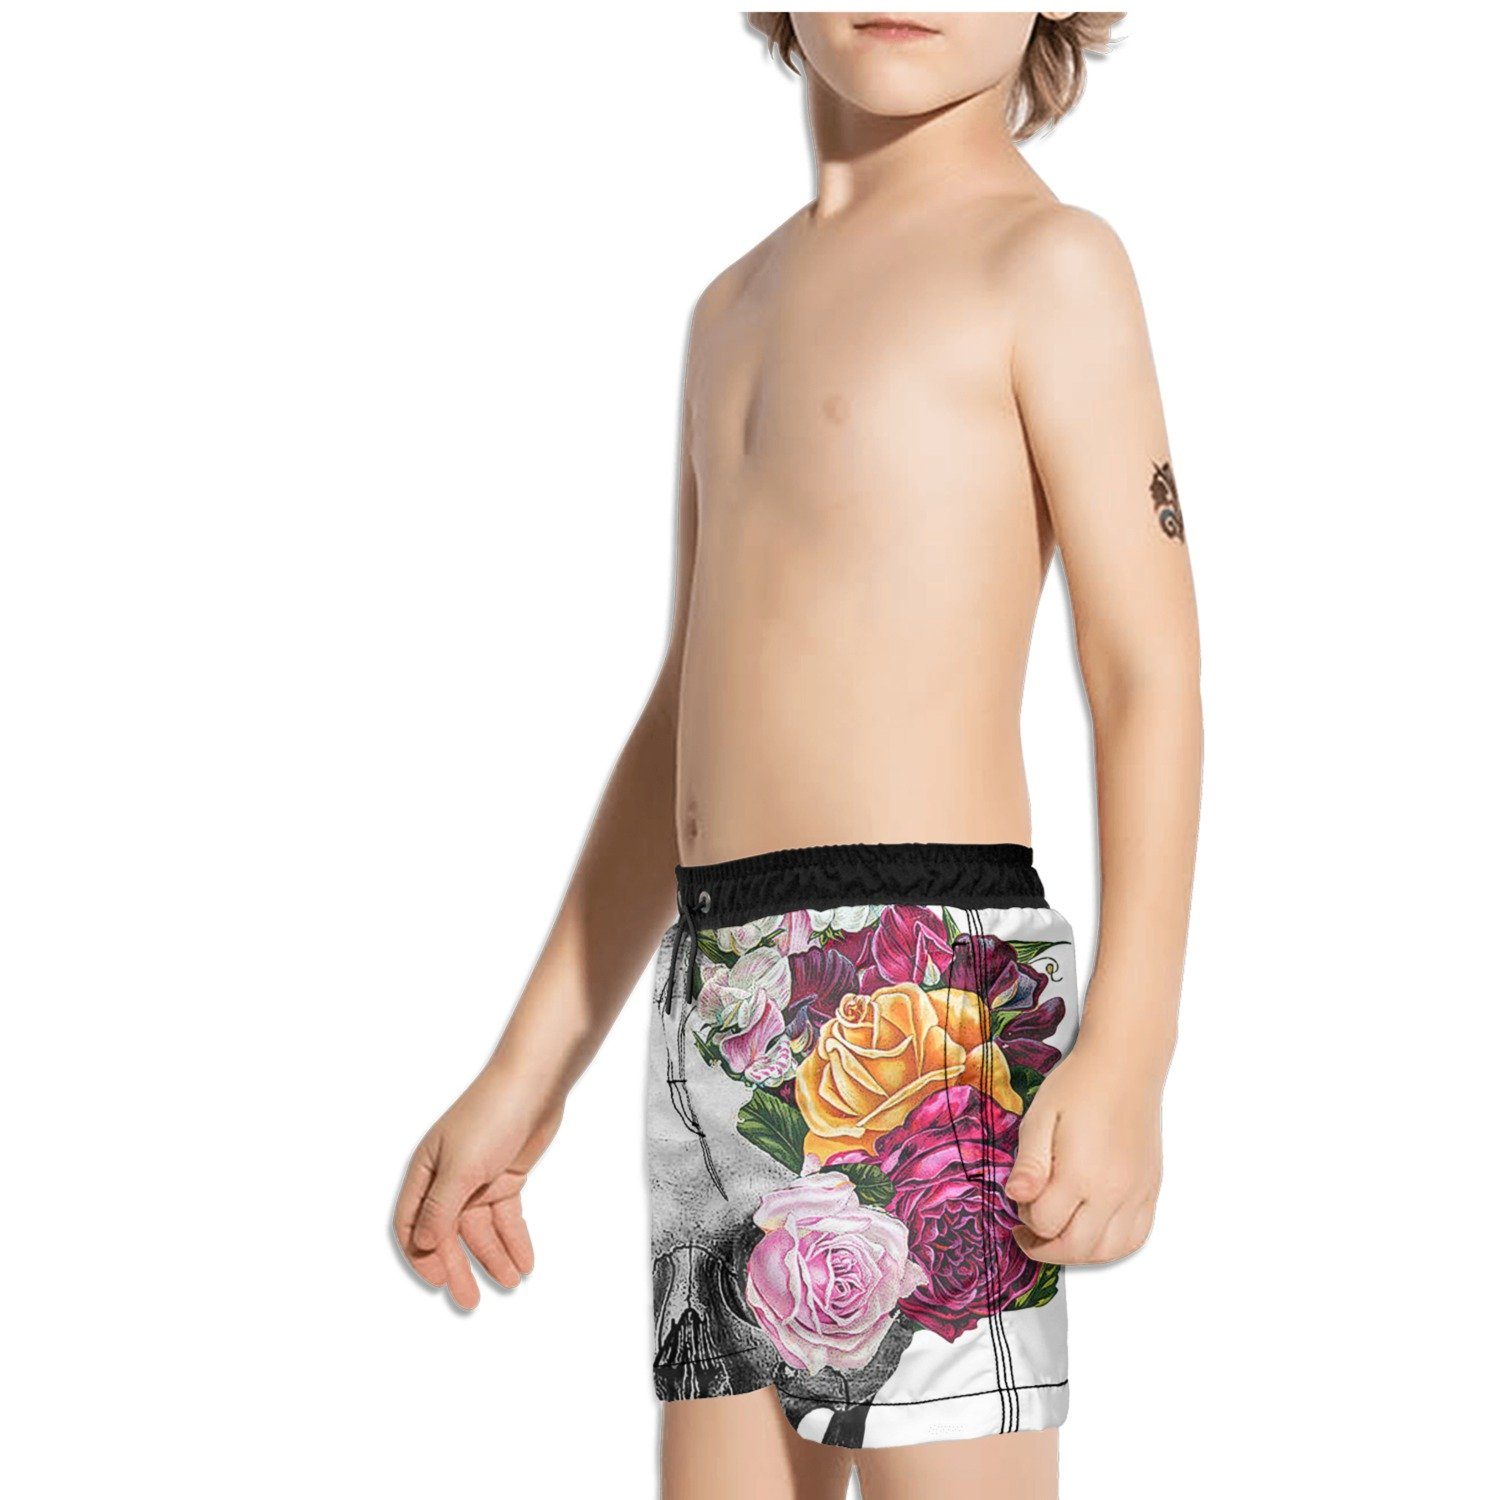 Ouxioaz Boys Swim Trunk Vintage Skull and Roses Beach Board Shorts